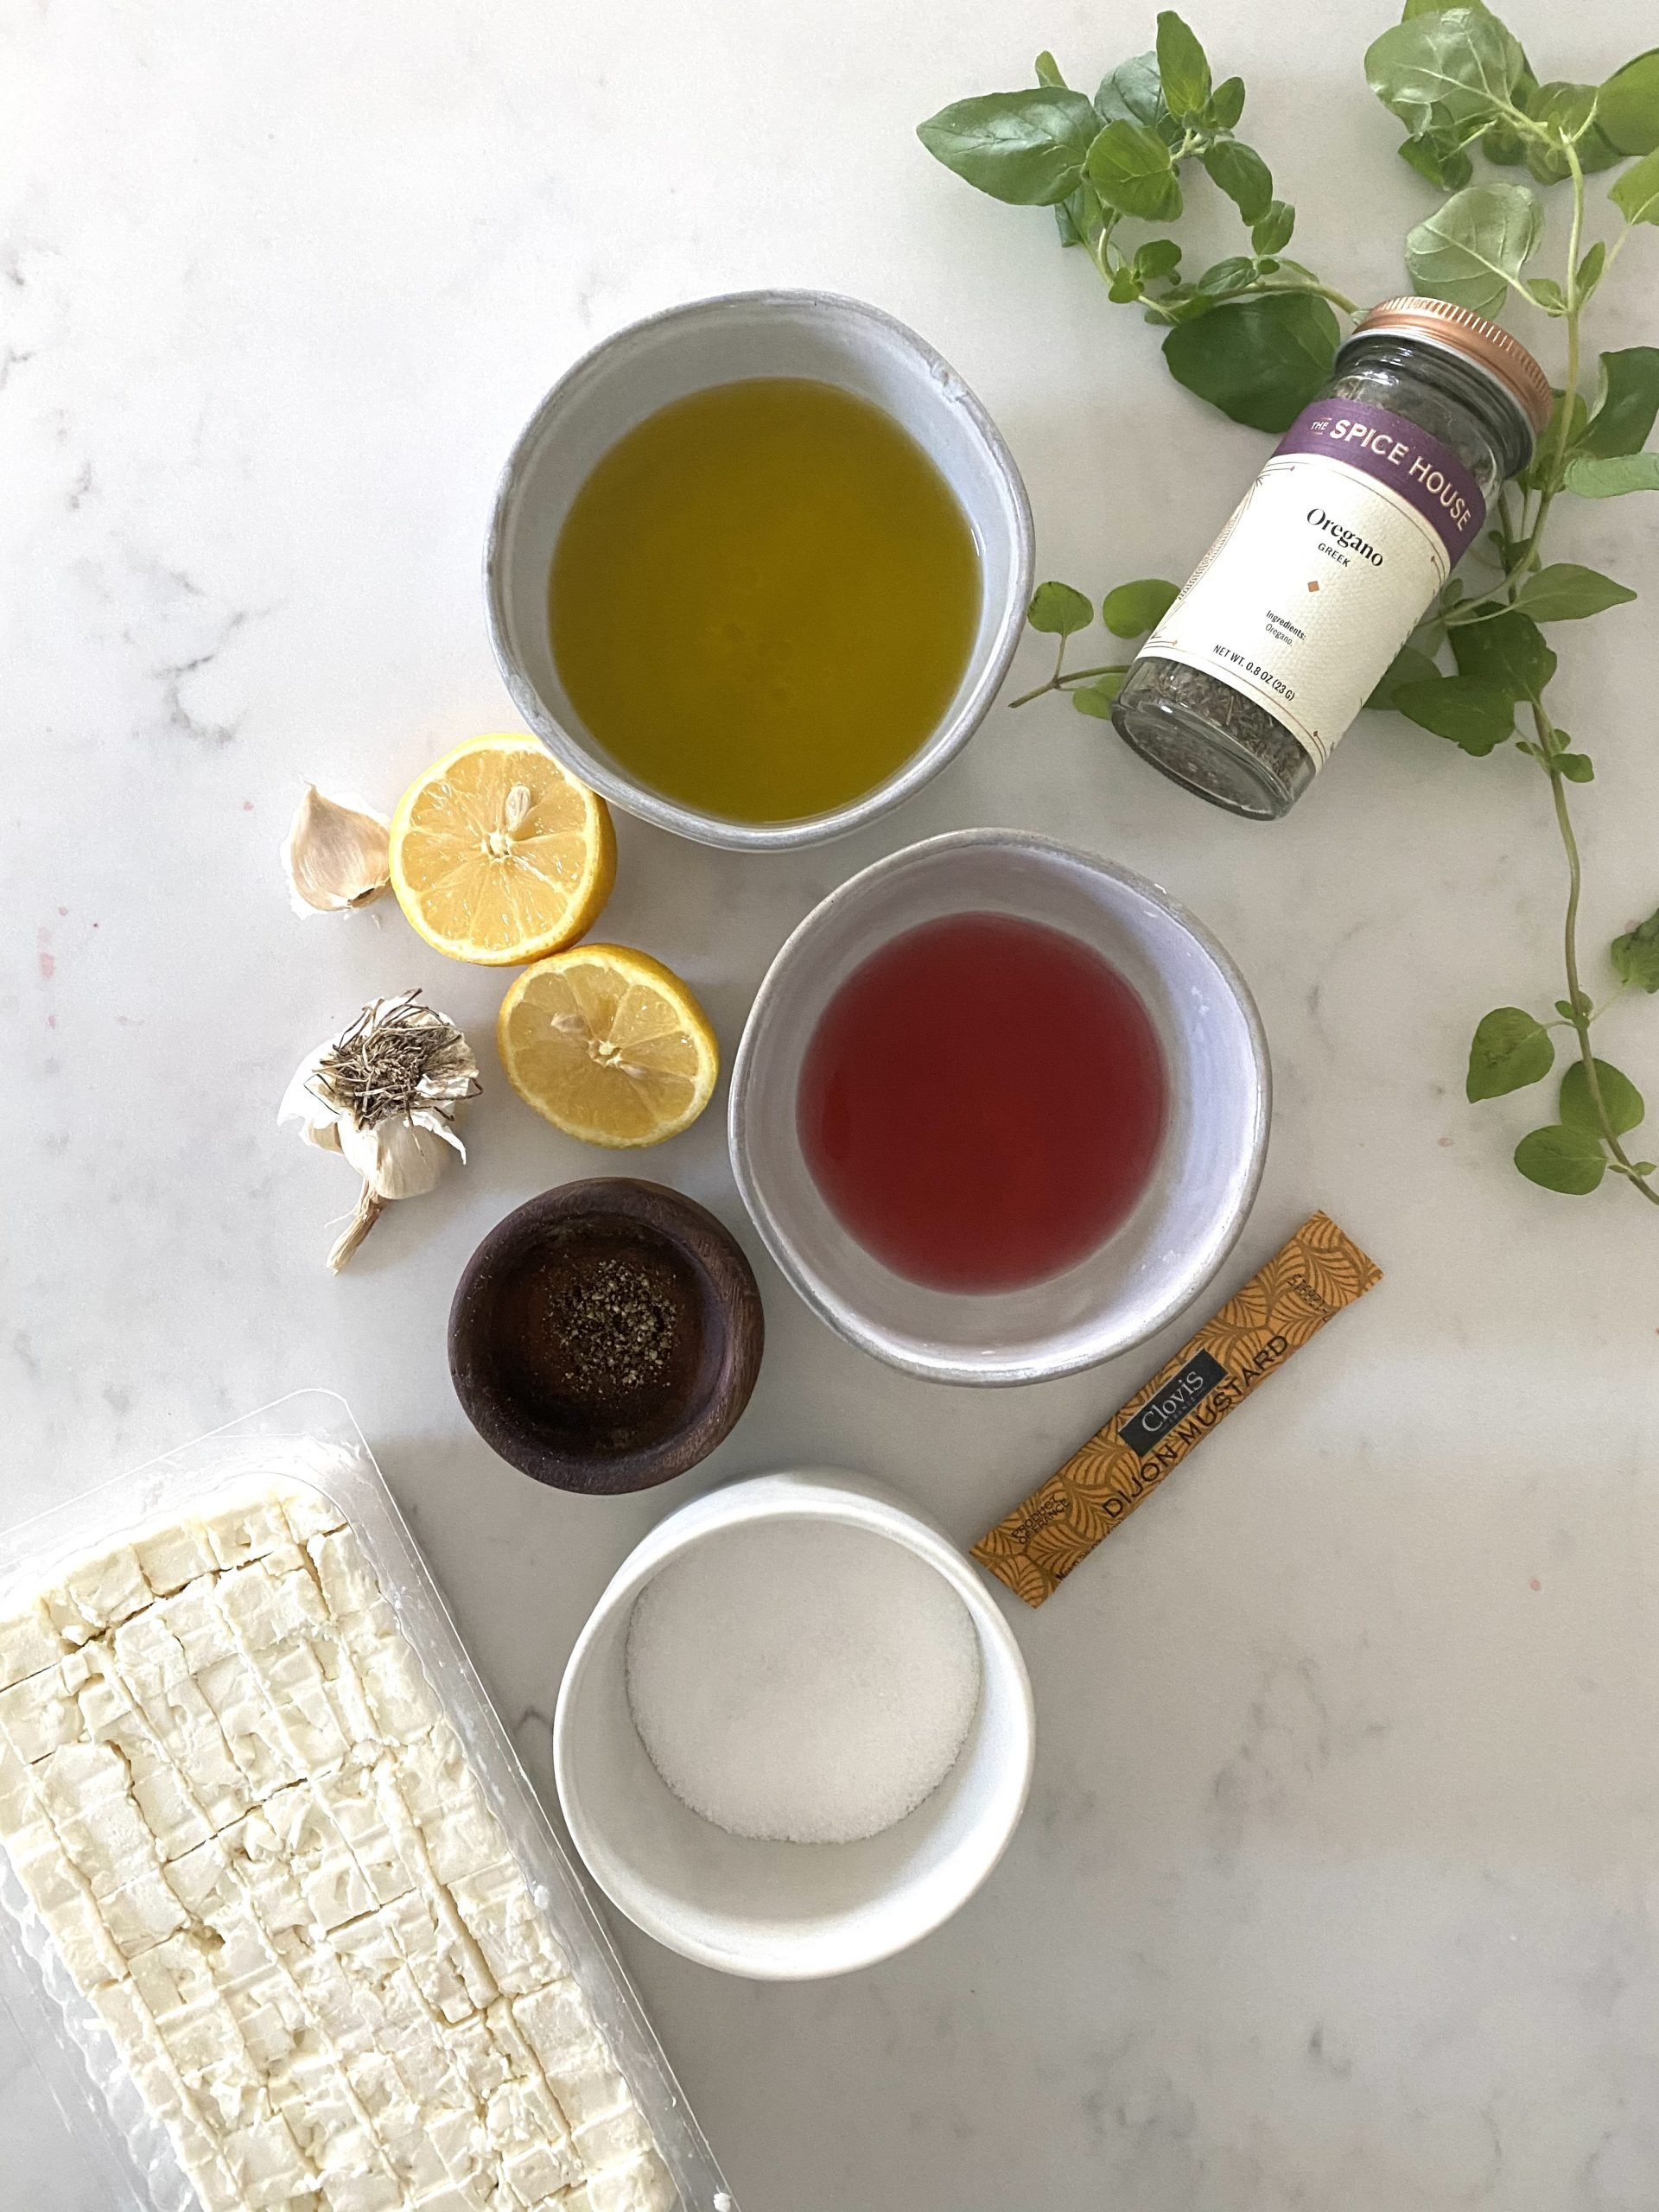 Lifestyle Blogger Chocolate and Lace shares her recipe for Greek Dressing.